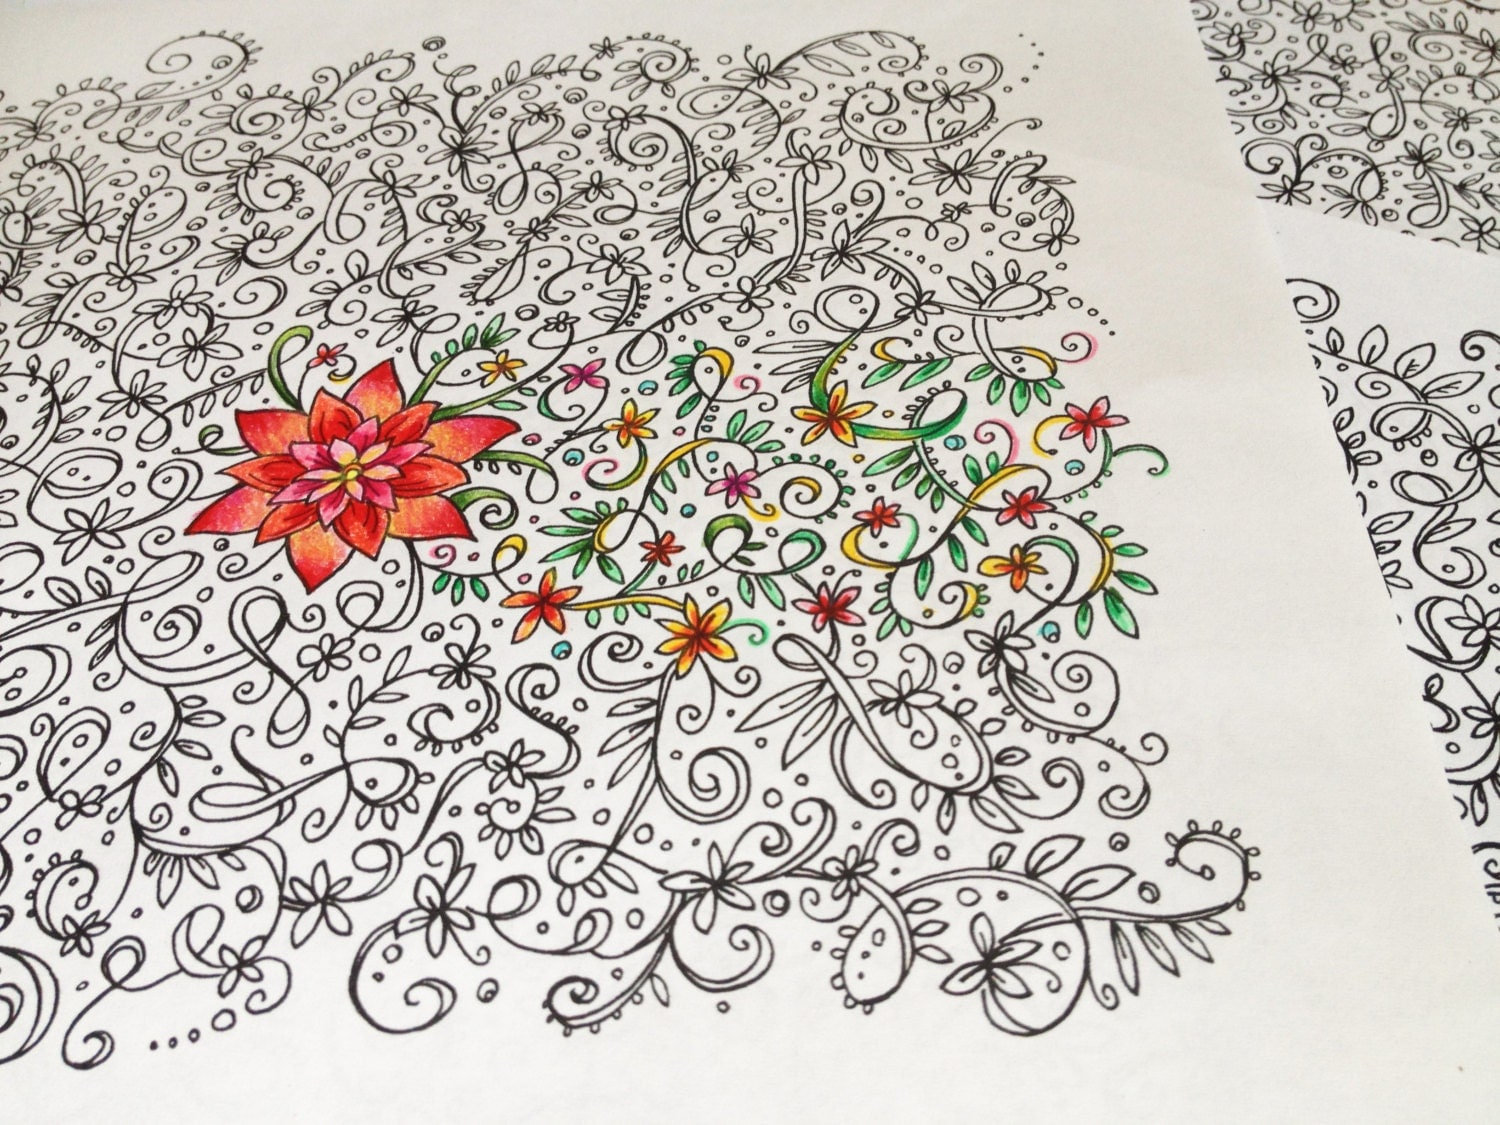 Flower vines coloring pages - Flowers On The Vine Adult Coloring Book Single Page Instant Download Printable Floral